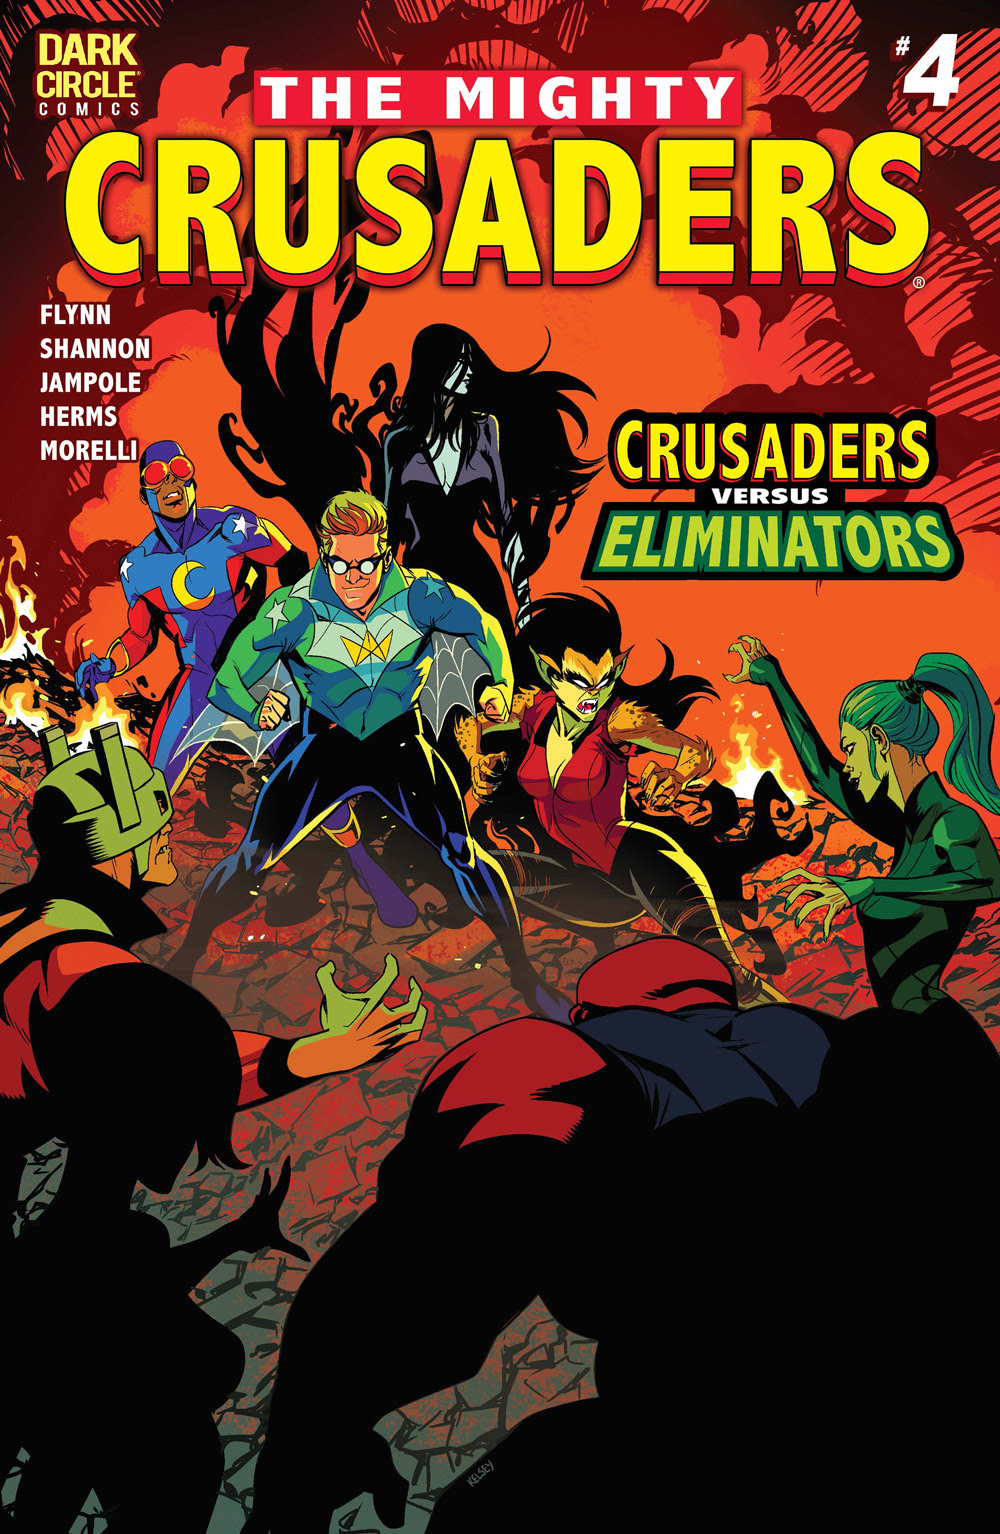 The Mighty Crusaders #4 CVR A: Shannon